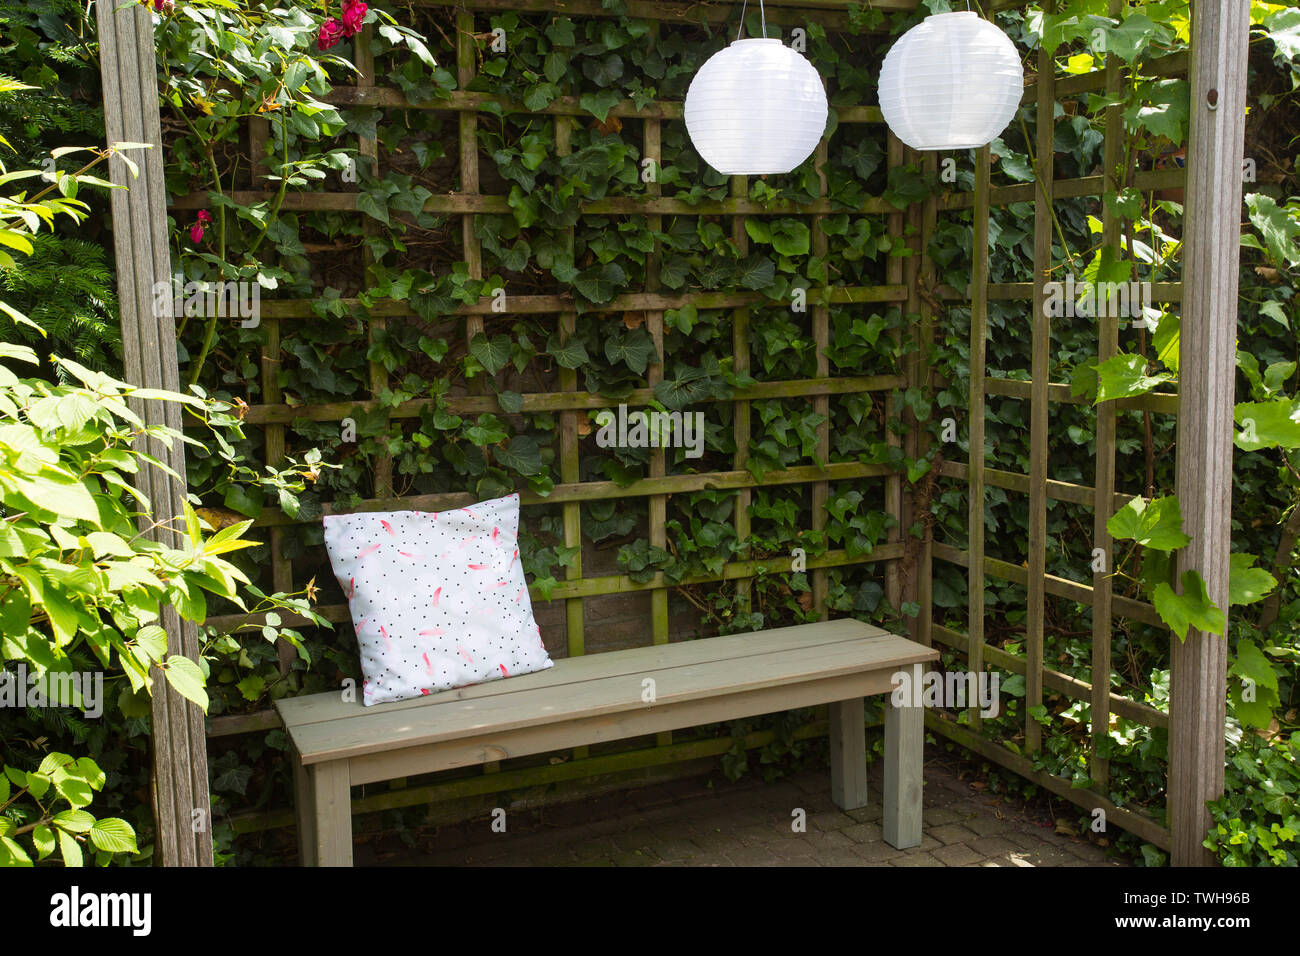 Heavy Duty Counter Stools, Wooden Bench With The Overgrown Canopy In Home Landscaped Garden In Summer Beautiful Flower Garden With Paving Path In Backyard Cozy Natural Stock Photo Alamy